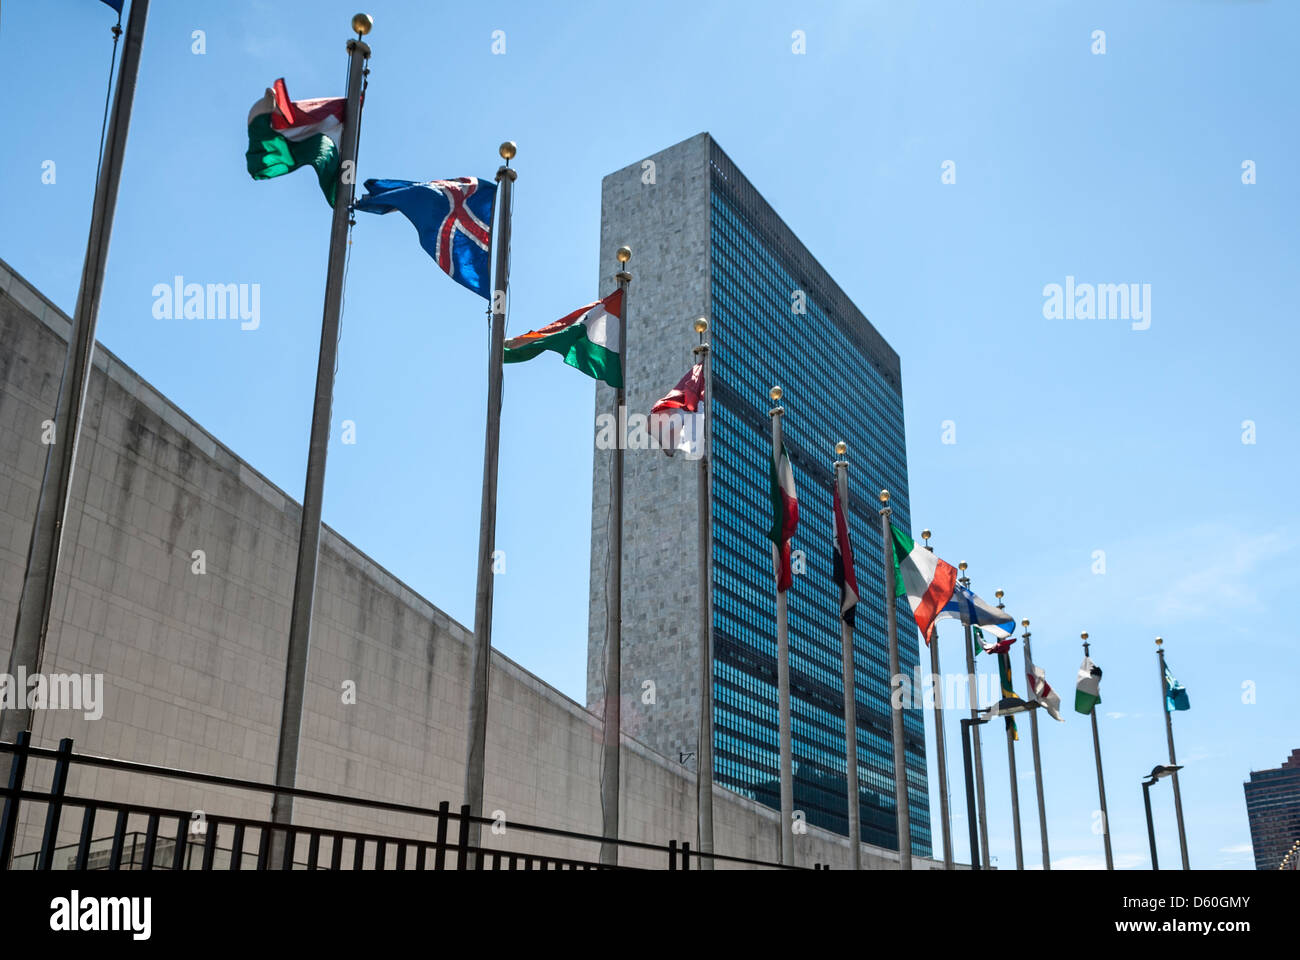 United Nations Building, UN Headquarters, Manhattan, New York City, NYC, New York, USA - Image taken from public - Stock Image